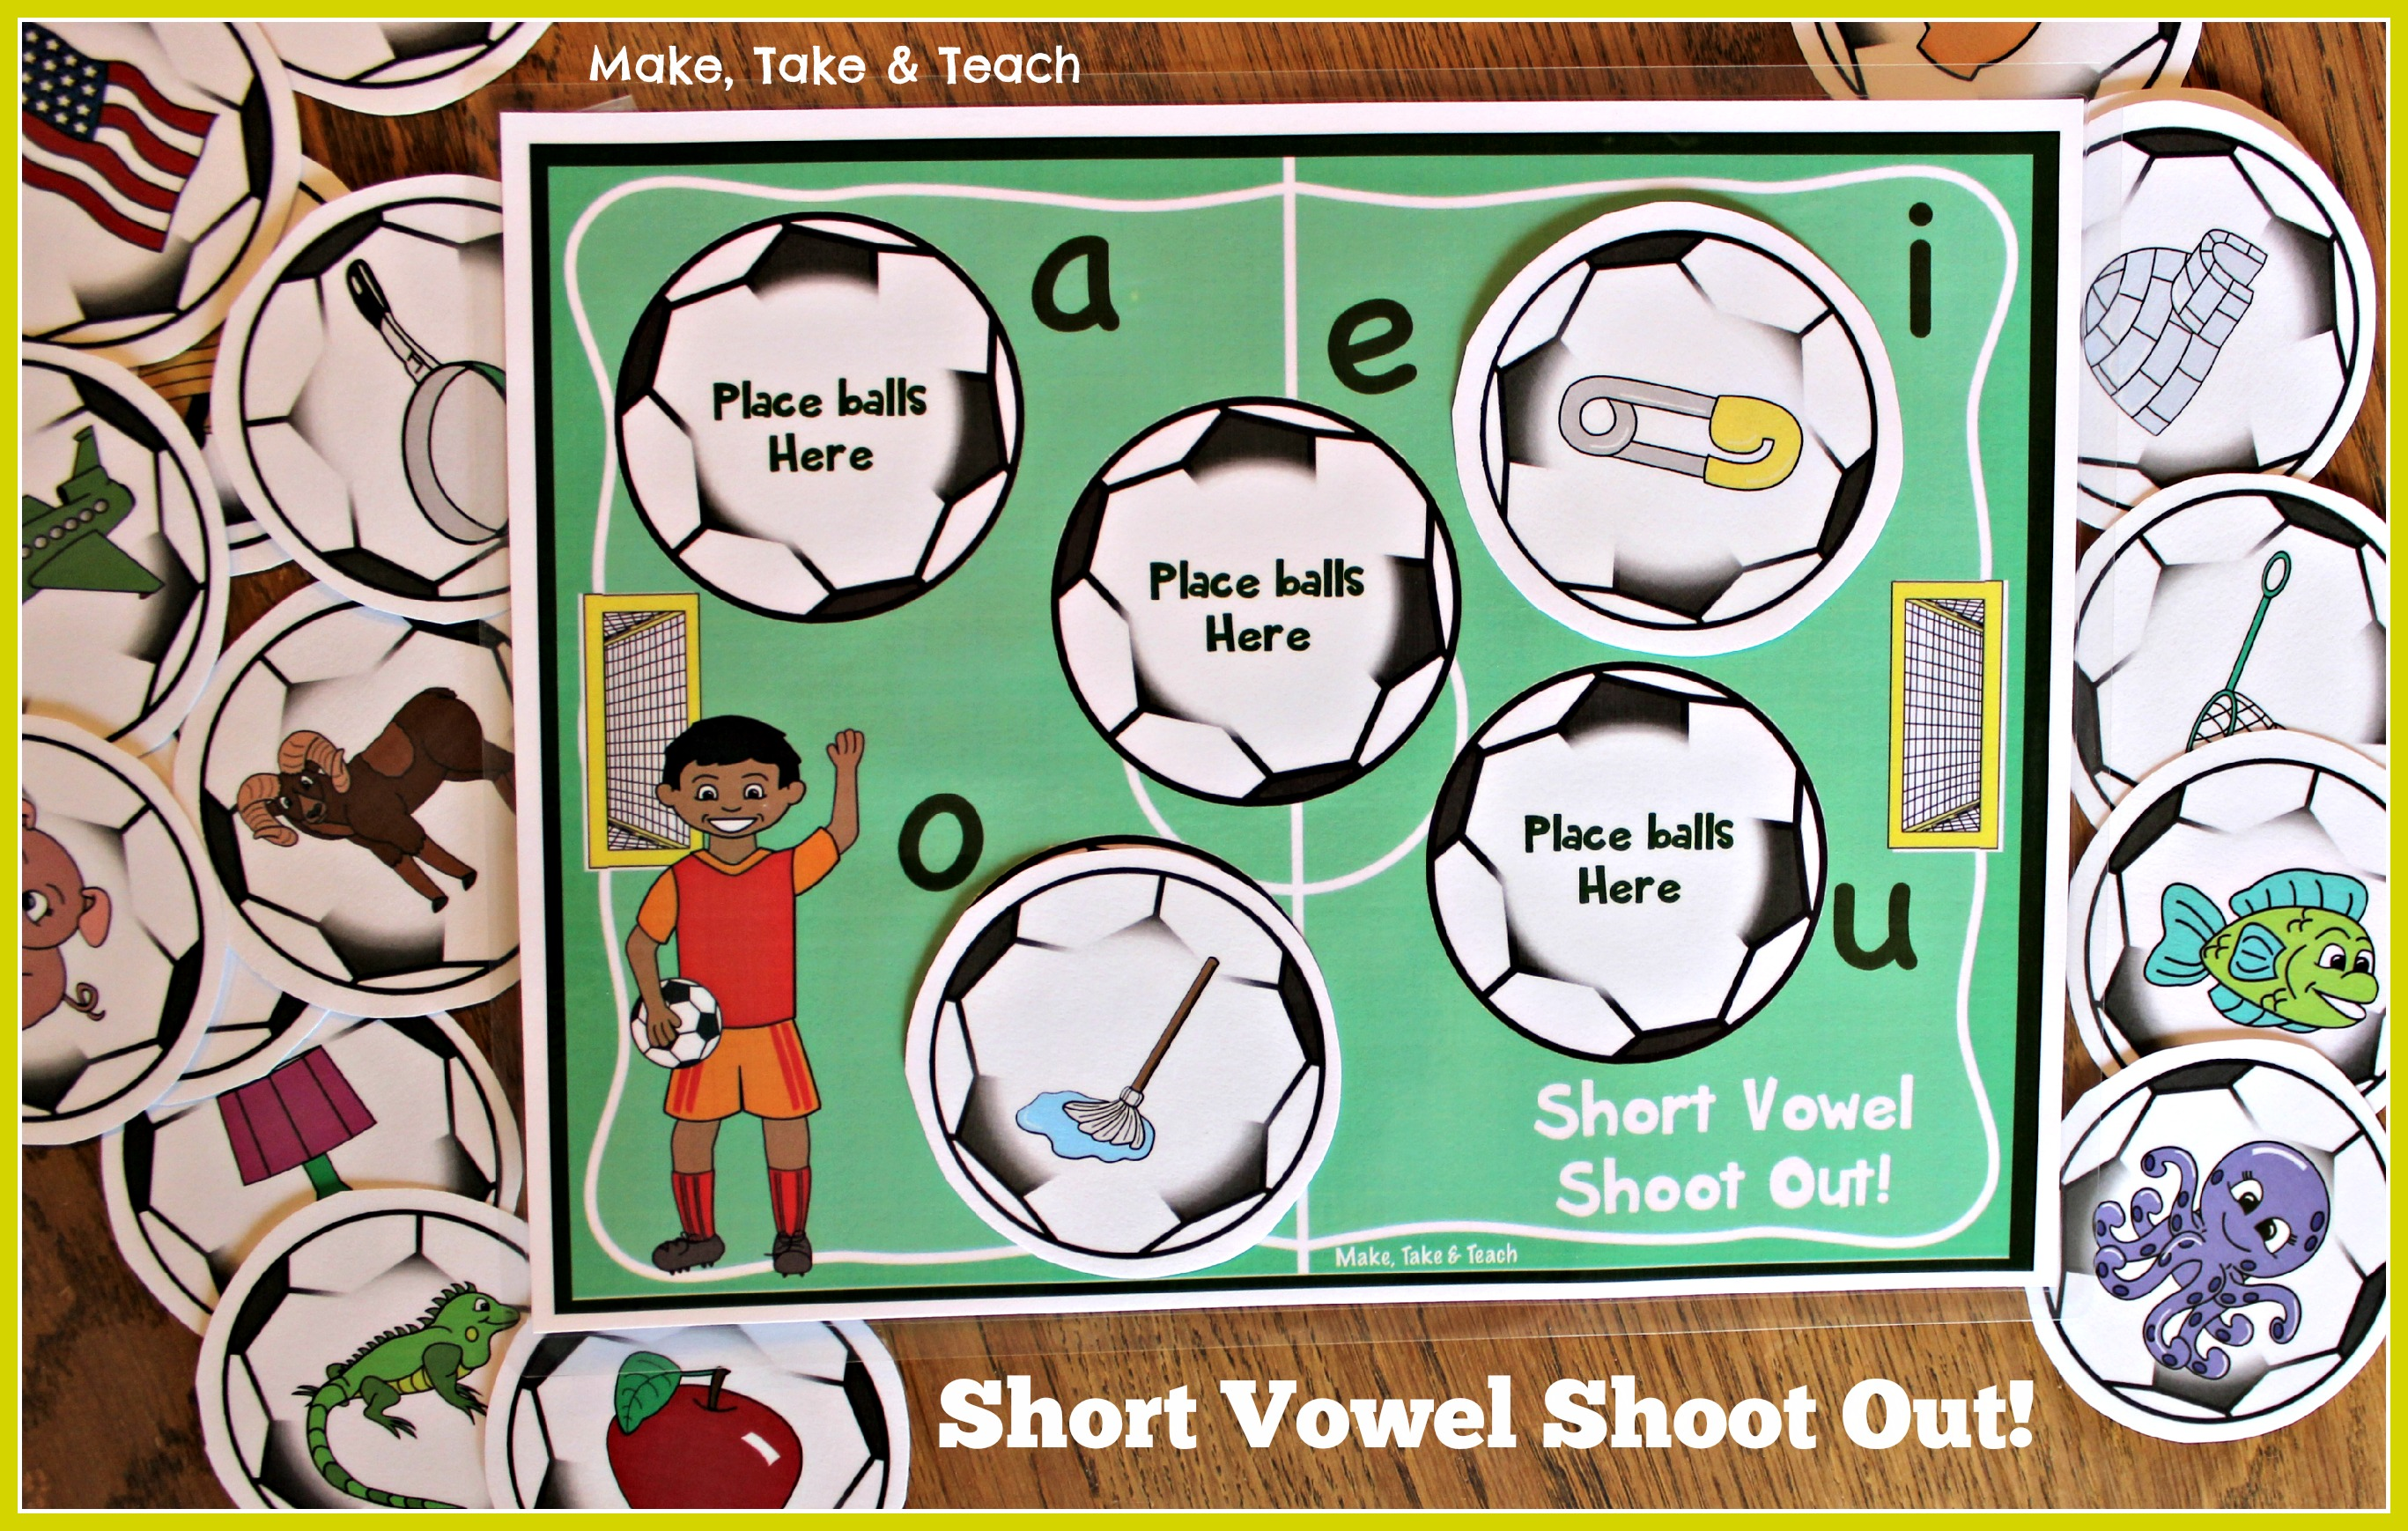 Short Vowel Shoot Out bp